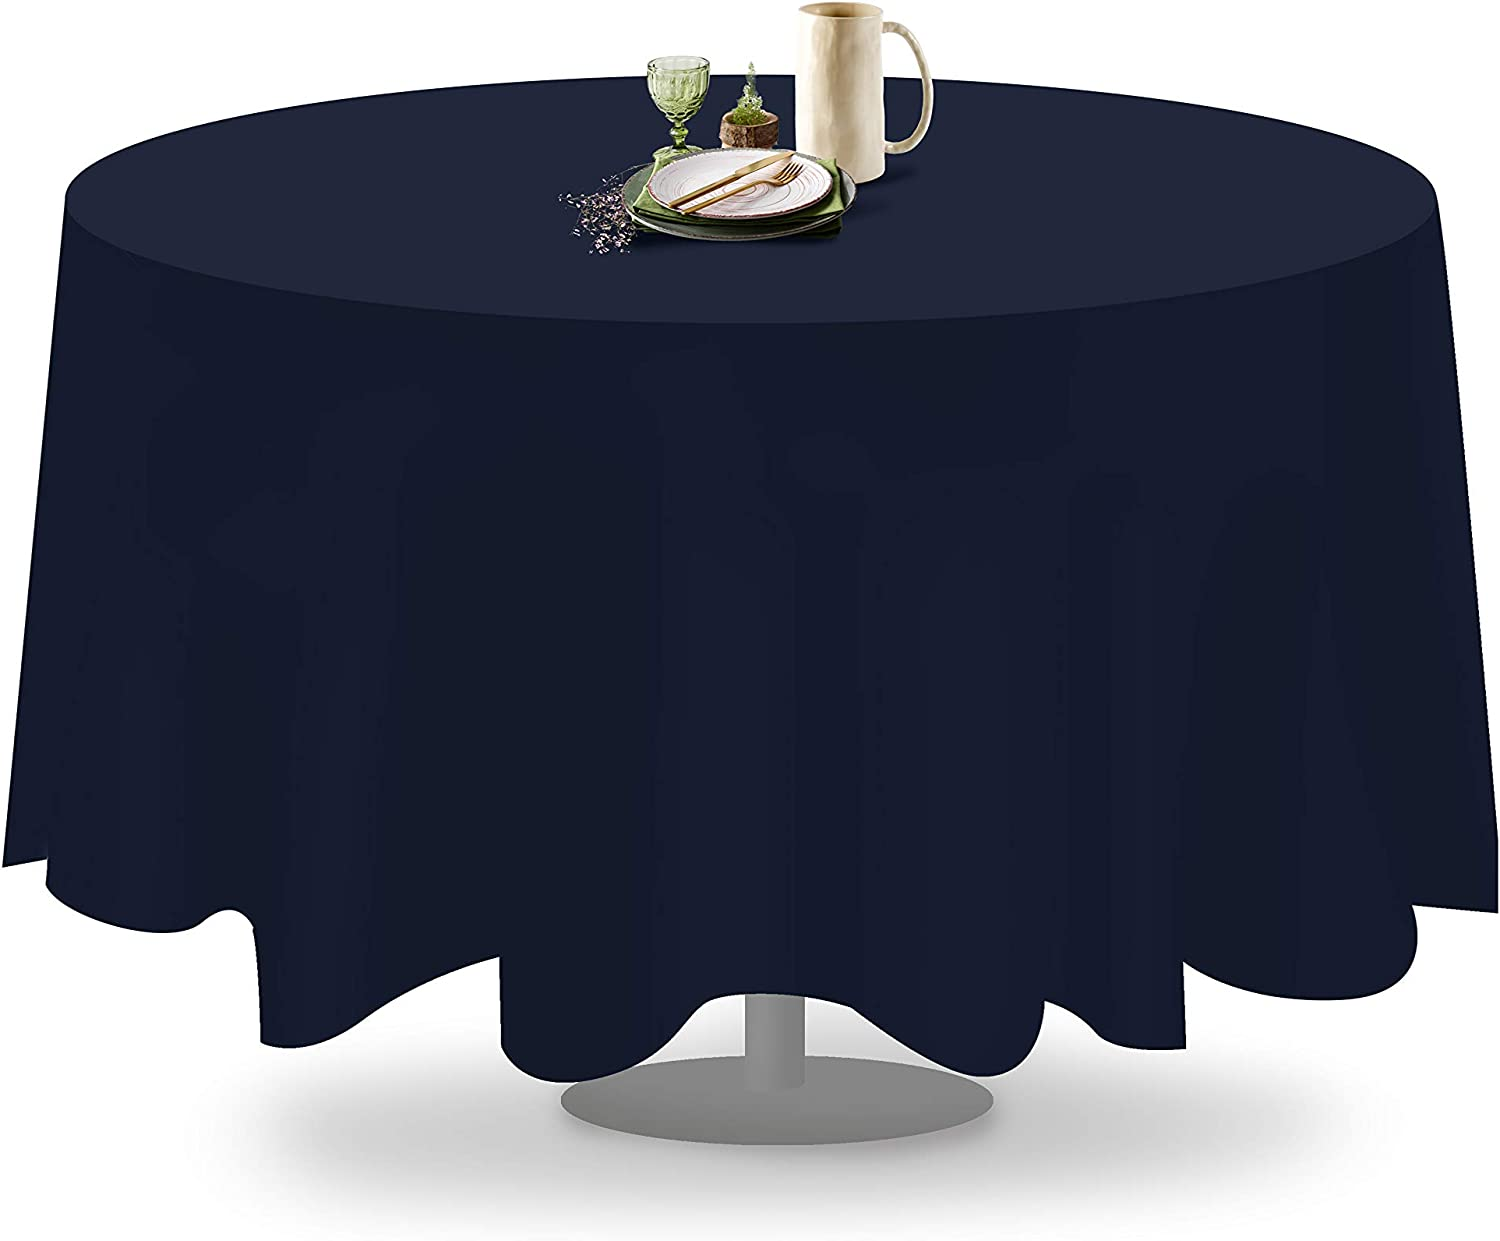 Fabric Washable Polyester Wrinkle and Stain Resistant Linen Alternative Grandipity Dark Grey 1 Pack Premium Polyester Round Tablecloth 120 Inch Circular Table Cover